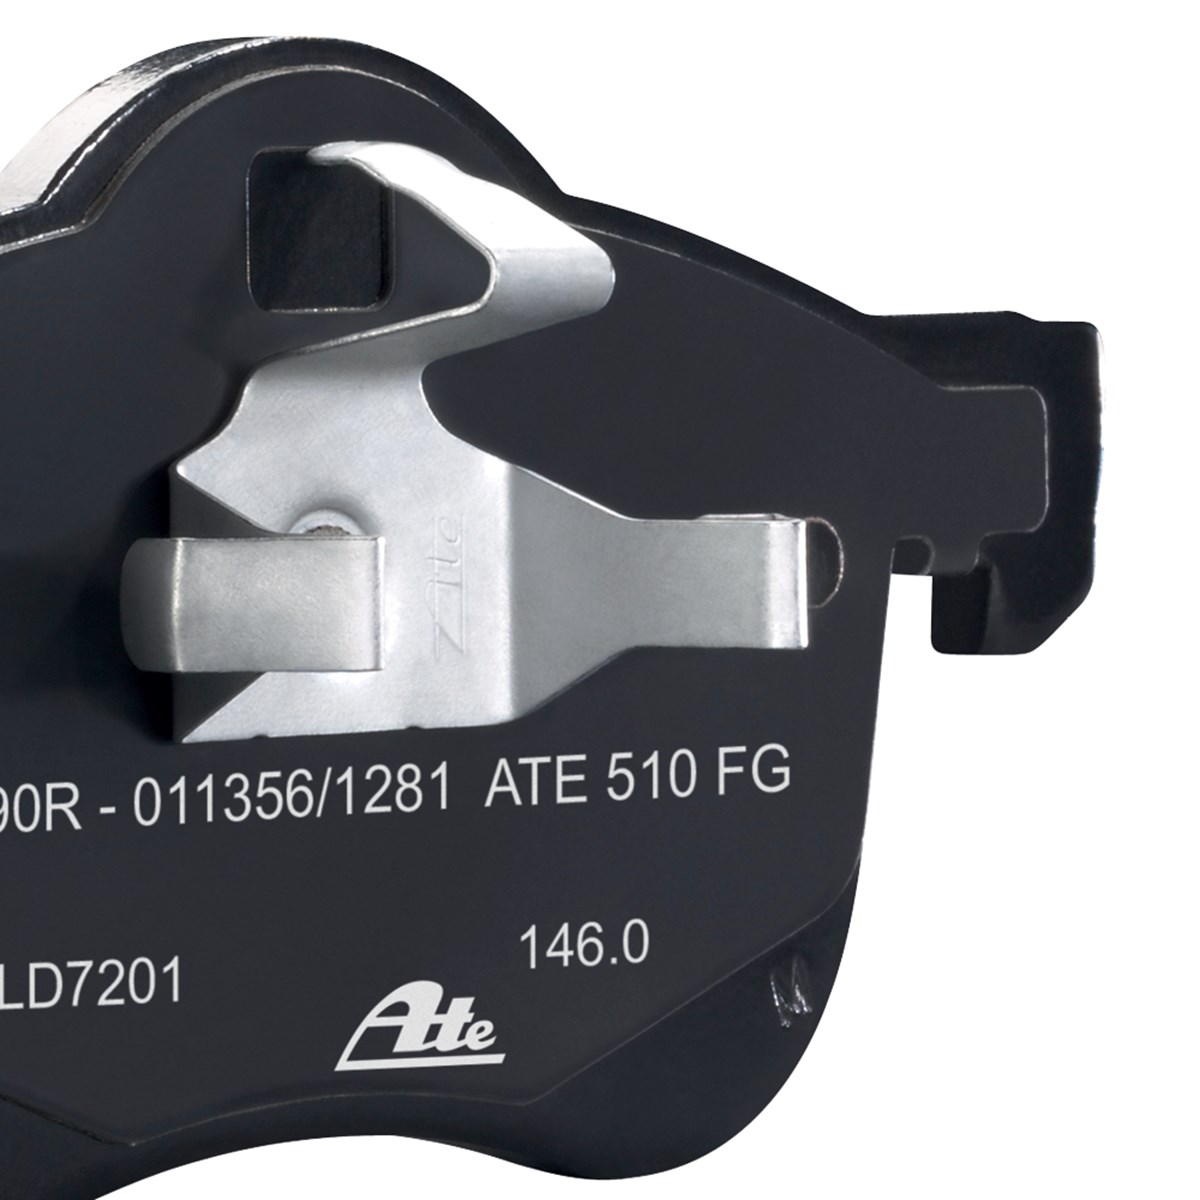 ATE Ceramic brake pads - detail view